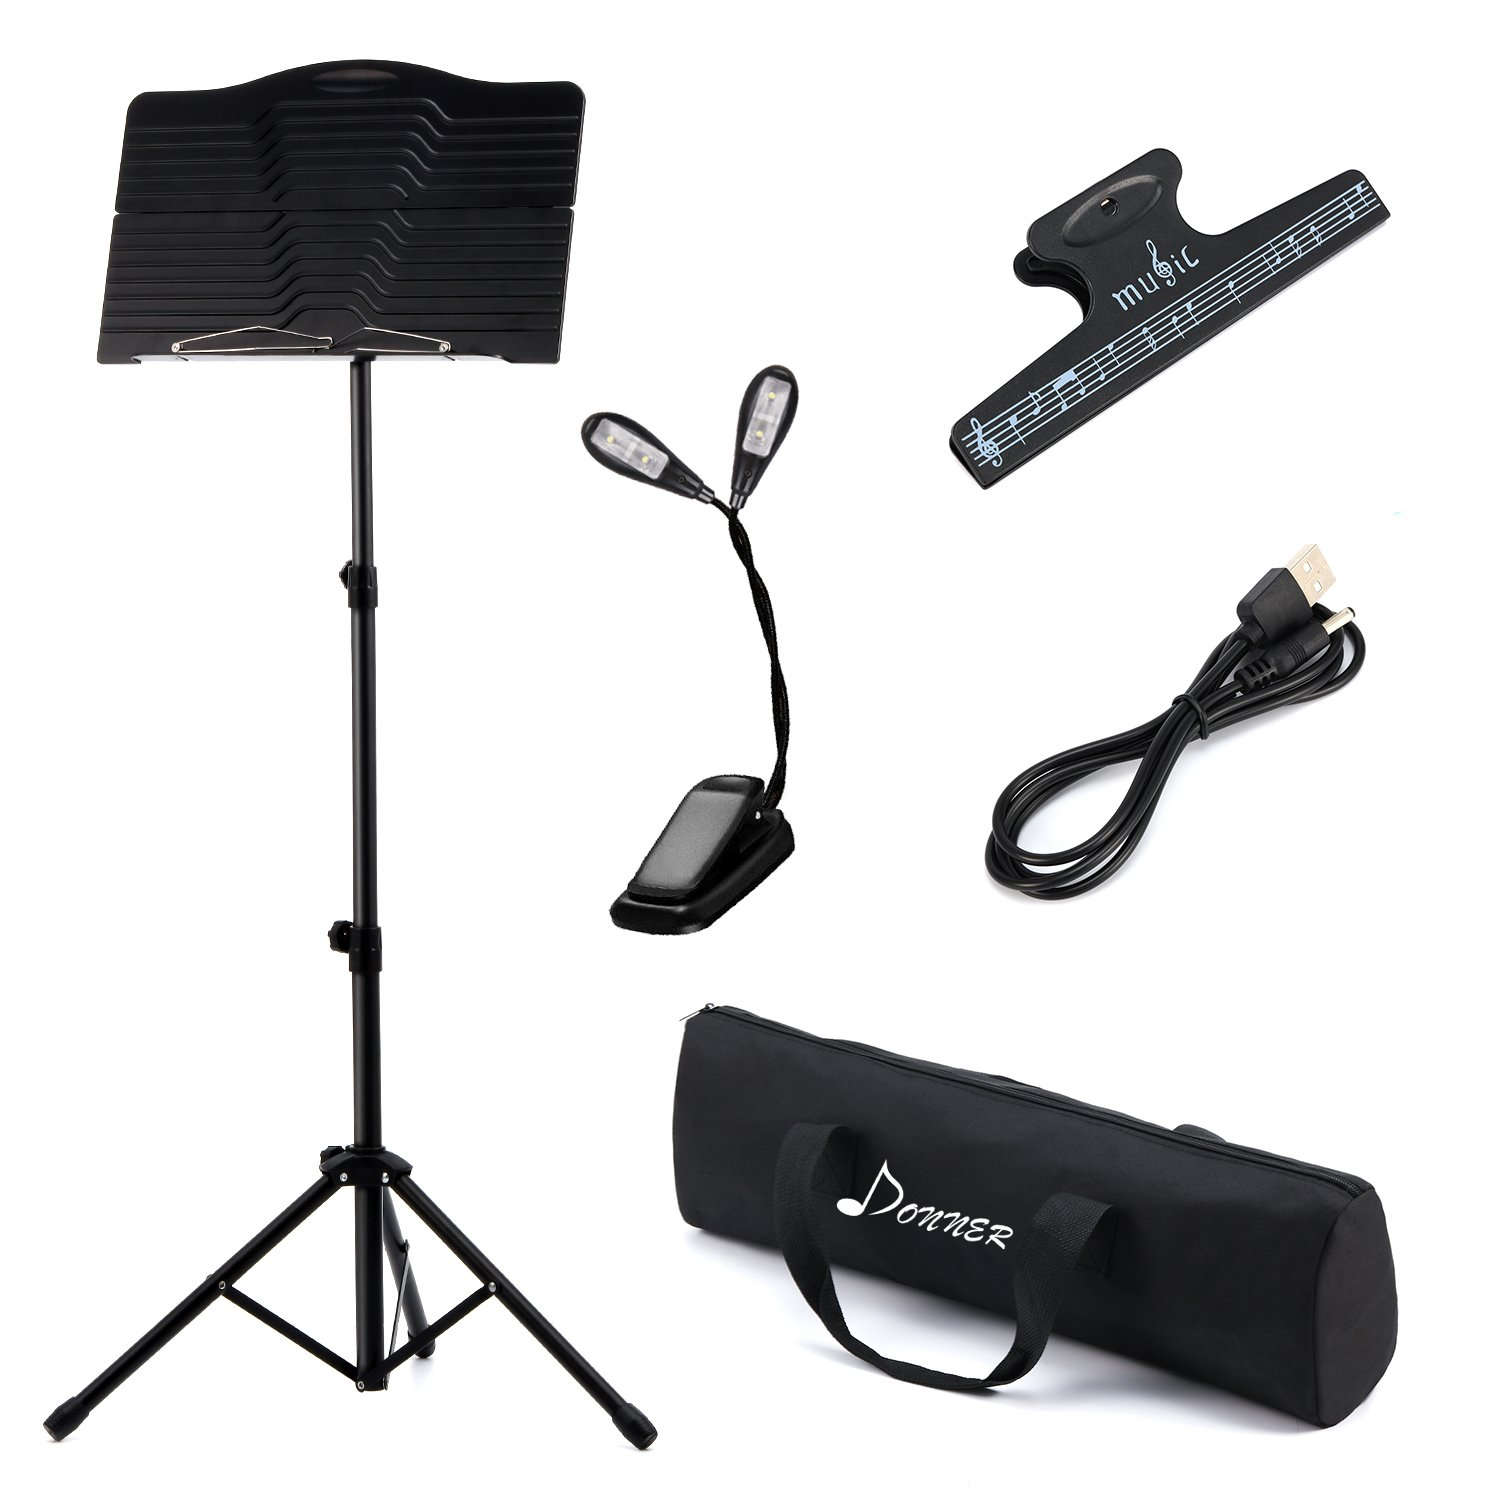 Donner Sheet Music Stand DMS-1 Folding Travel Metal Music Stand With Carrying Bag by Donner